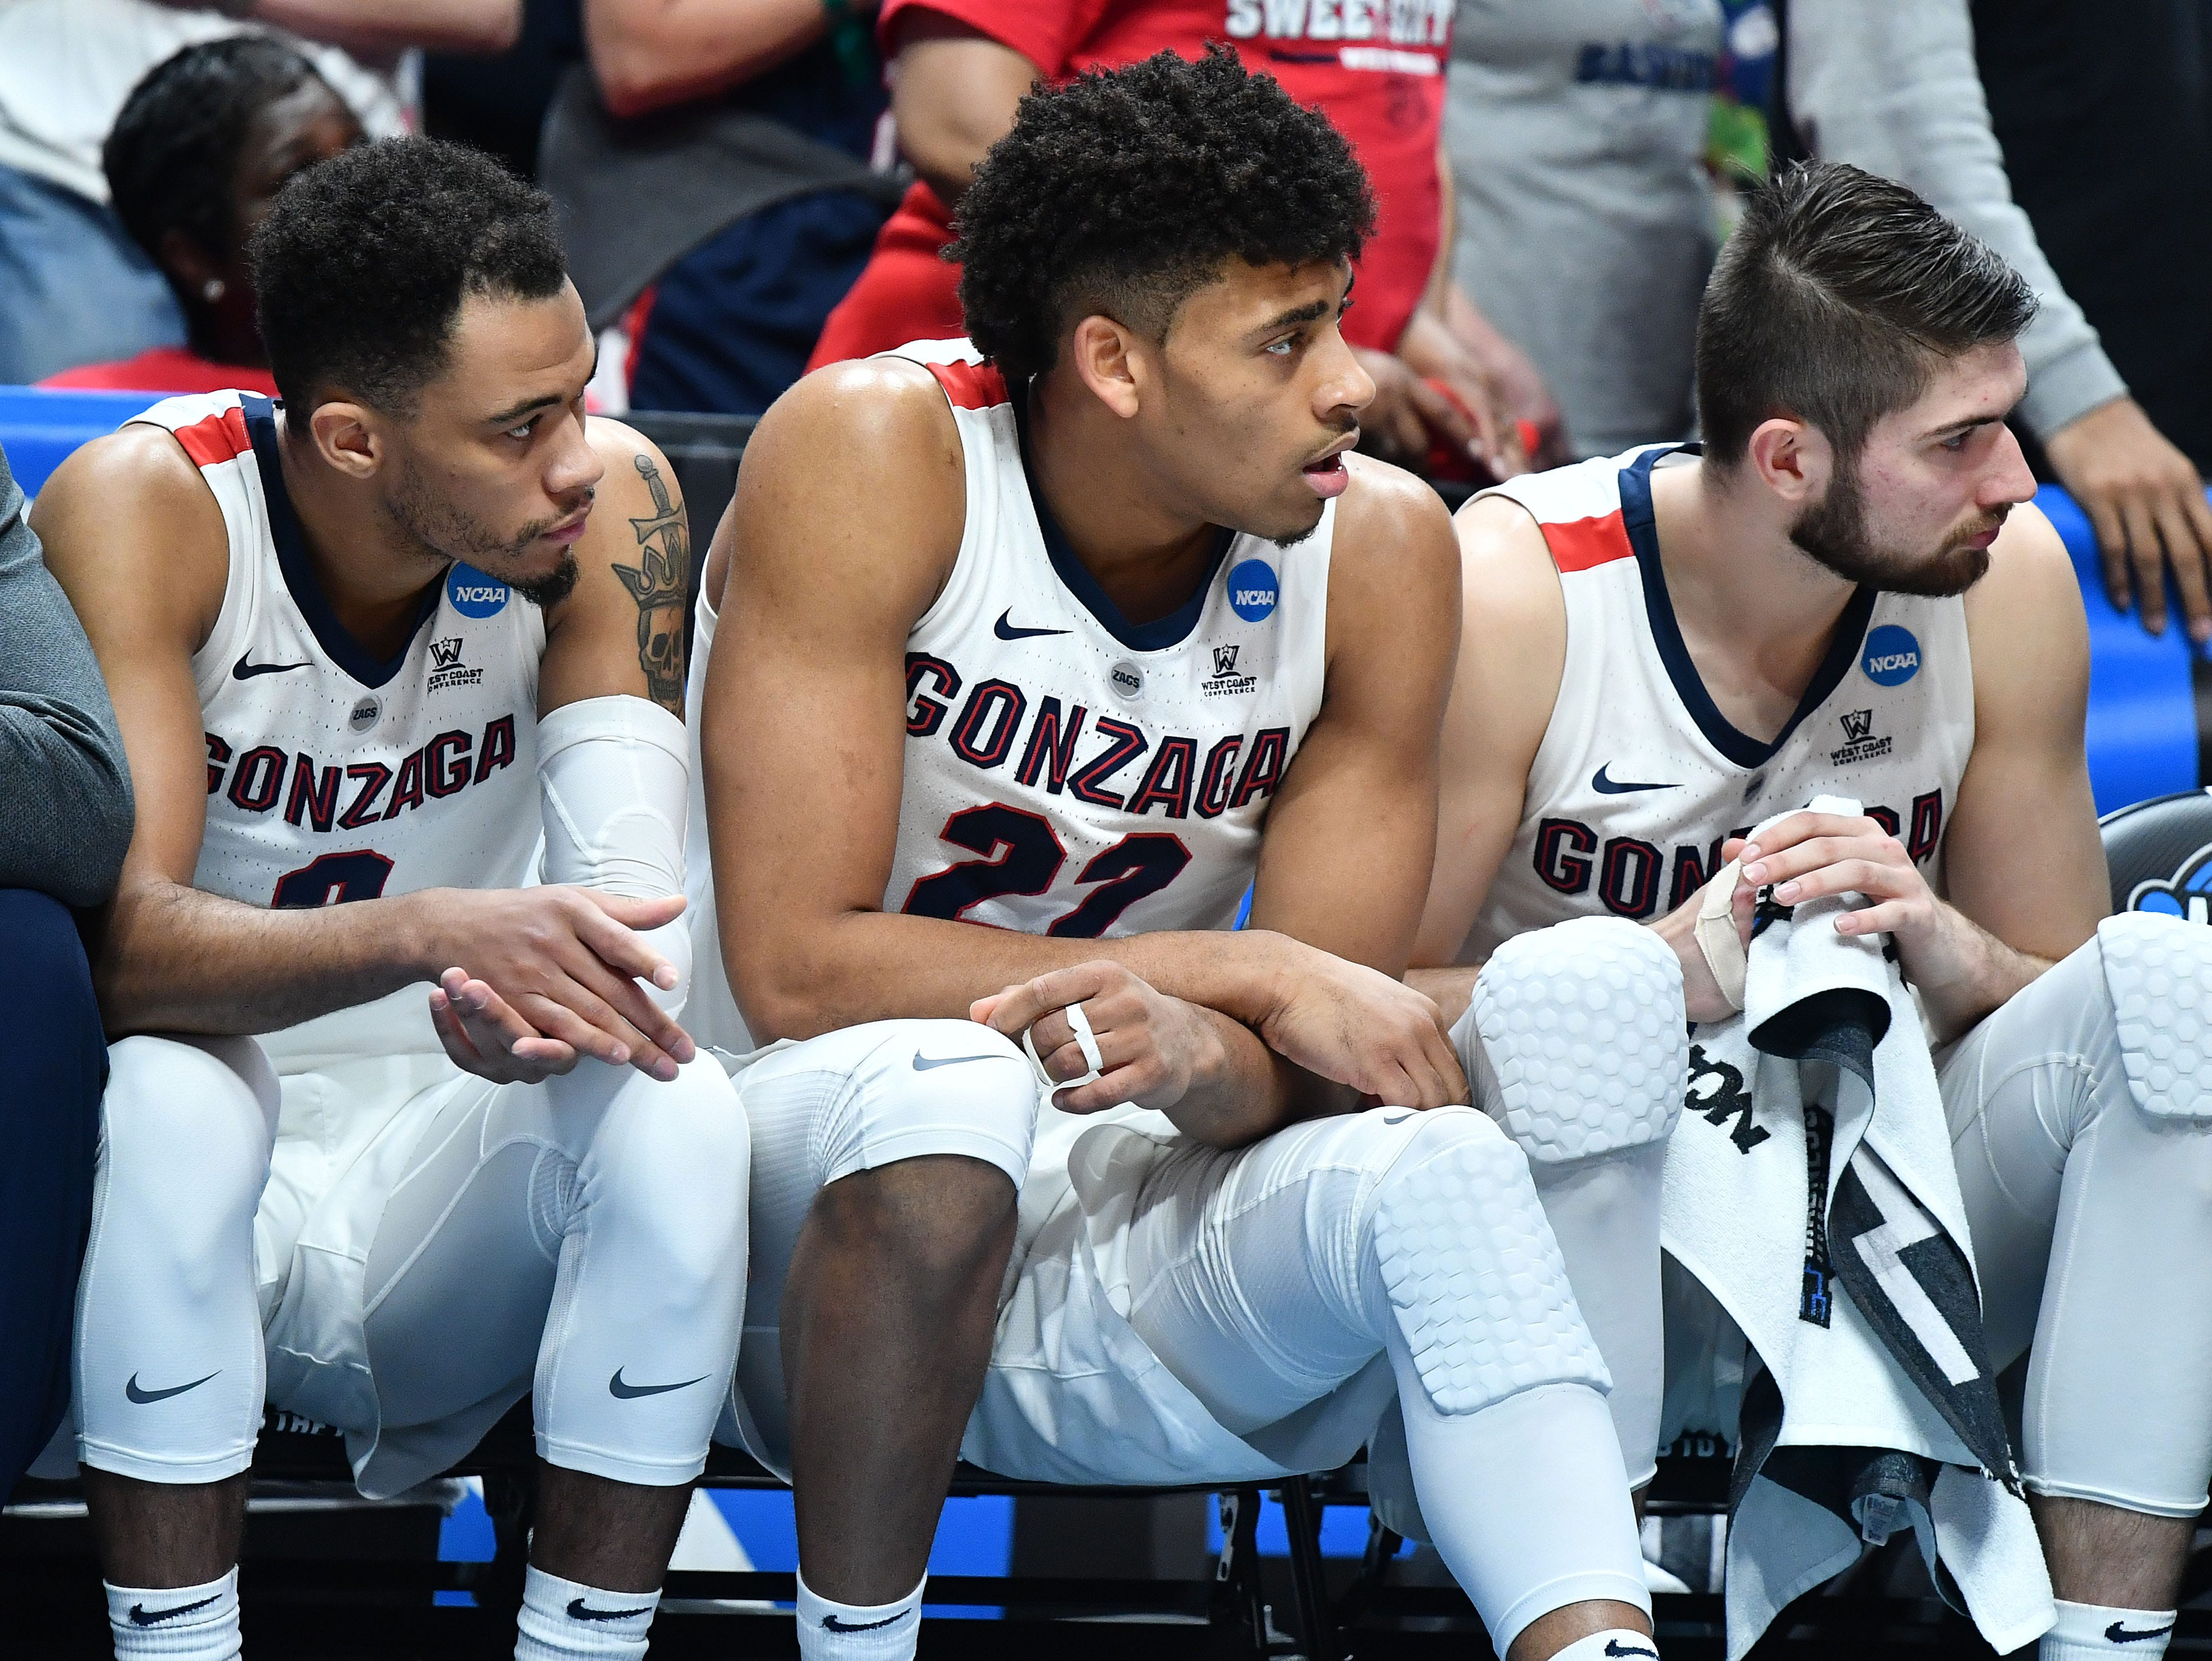 Elite Eight: No. 1 Gonzaga loses to No. 3 Texas Tech, 75-69.